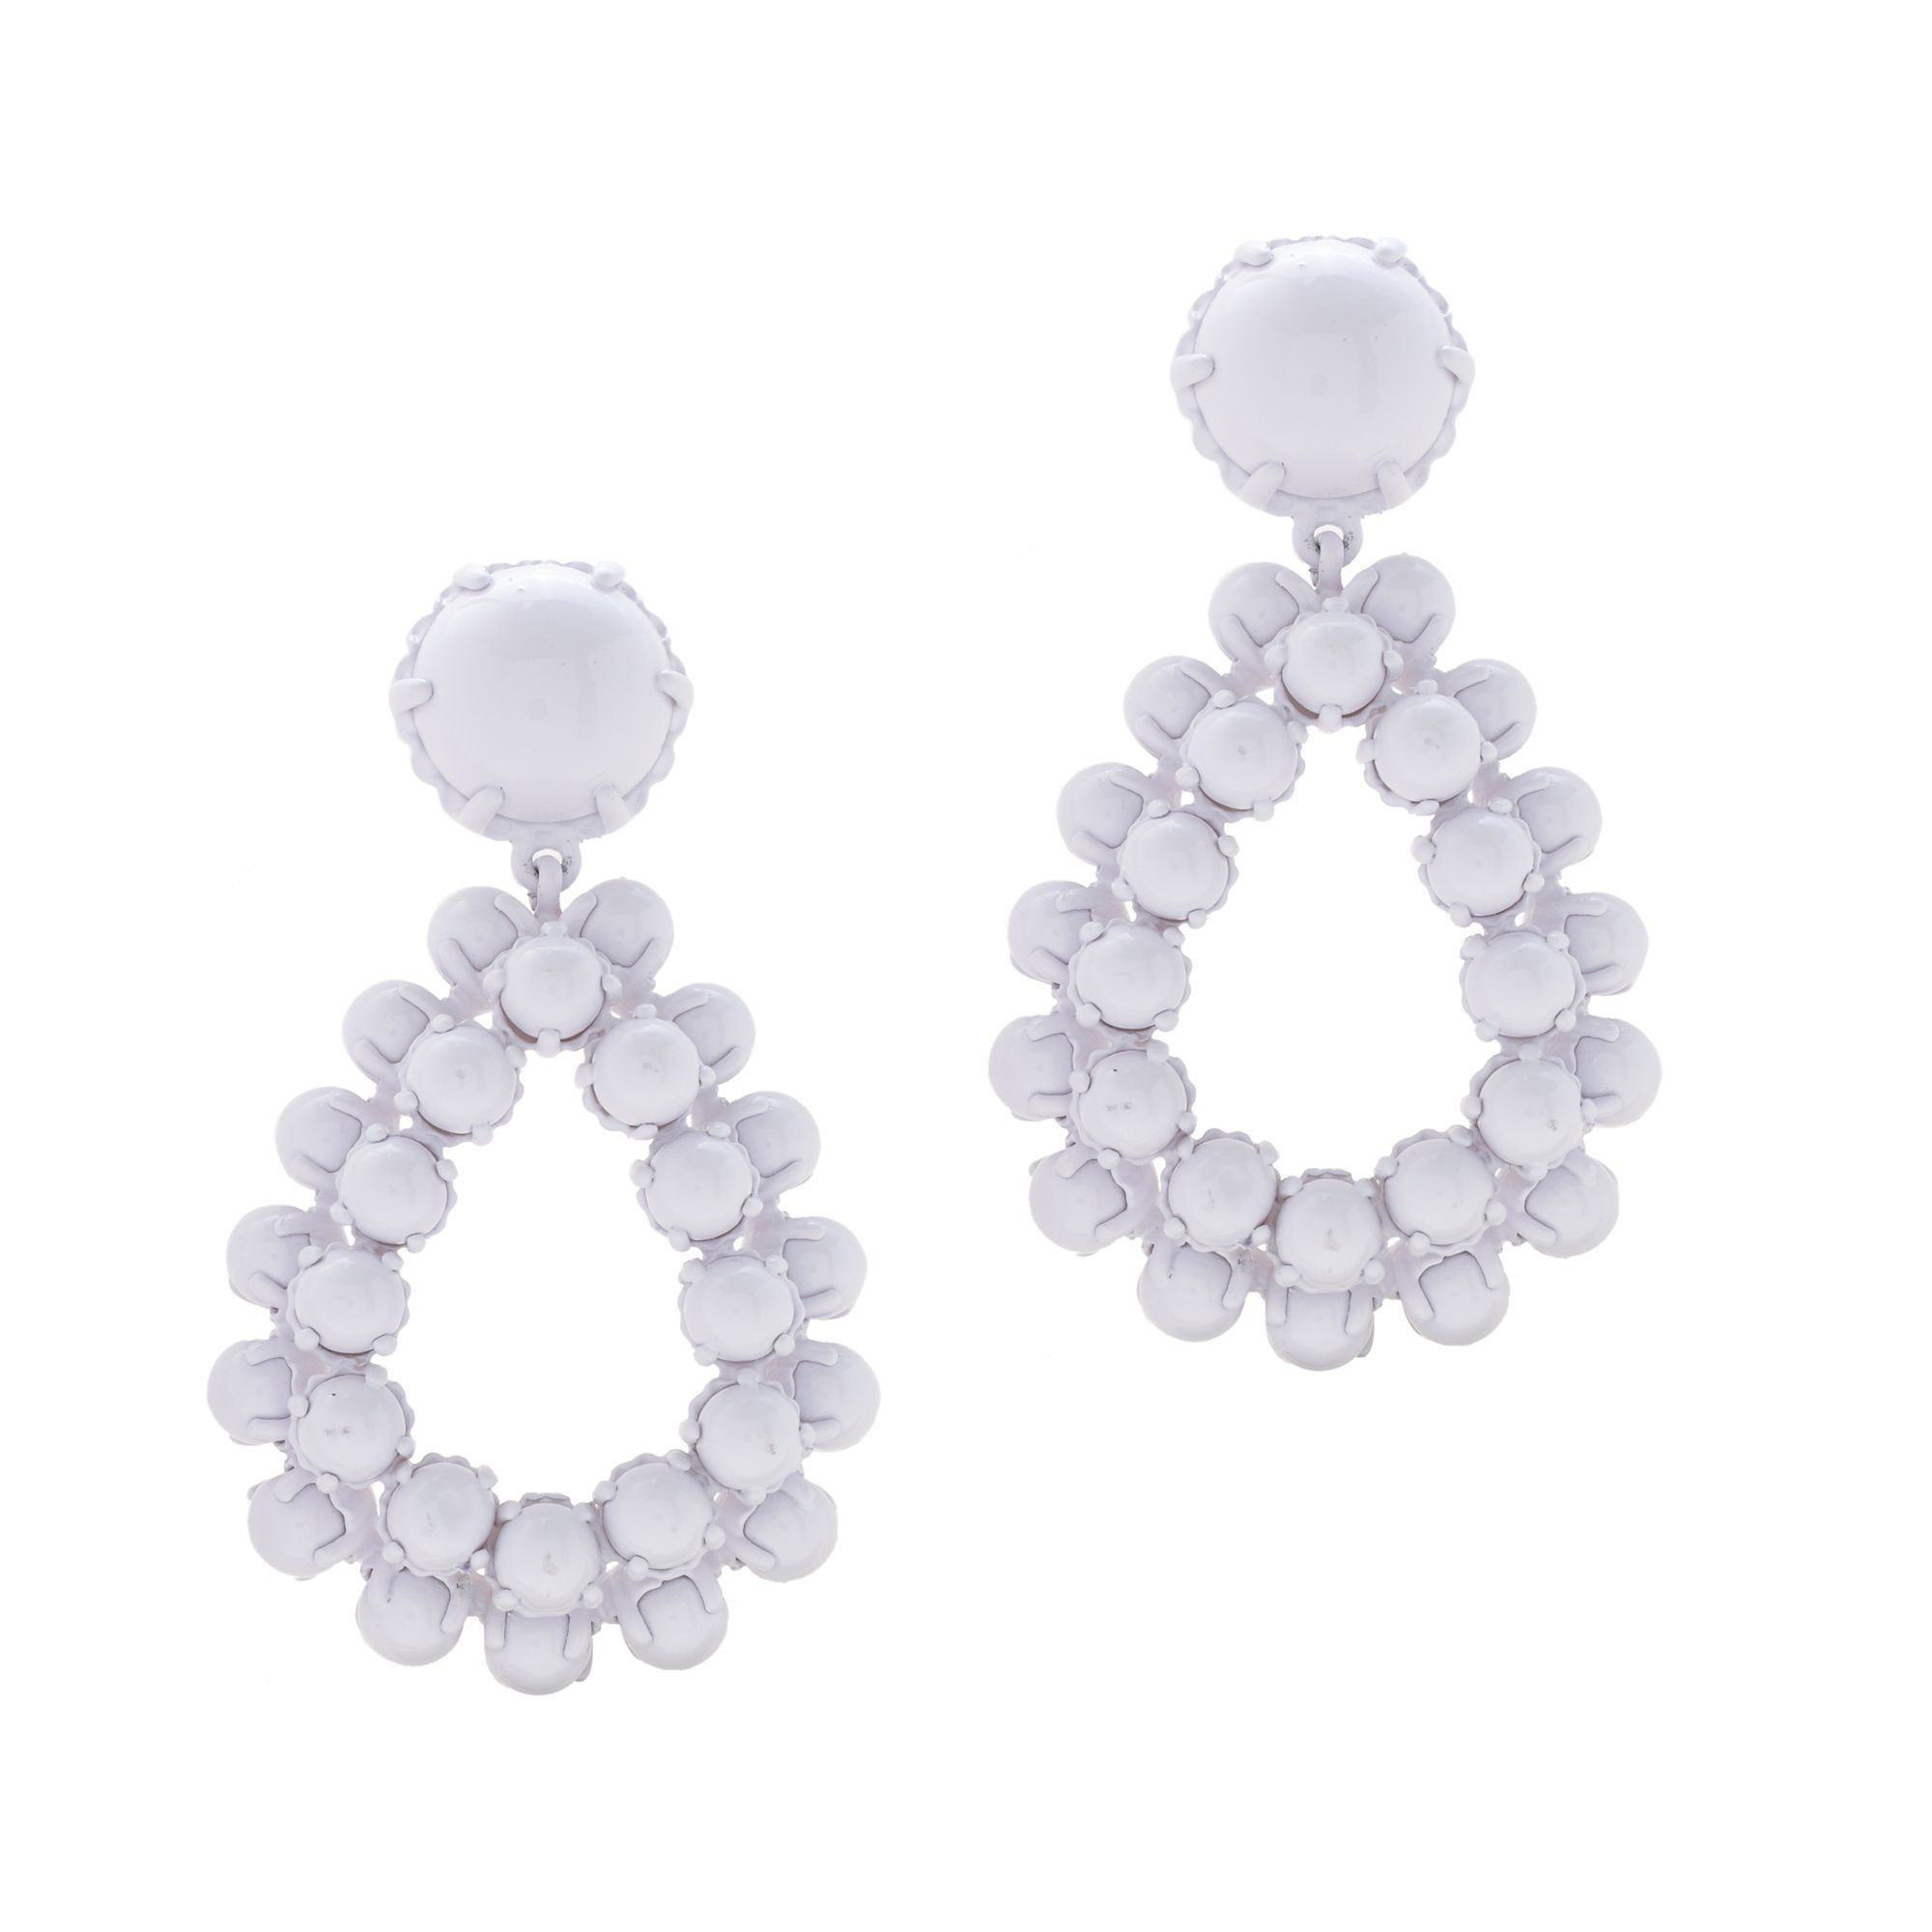 earrings loading bibi marini white operandi large blossom moda beaded by close